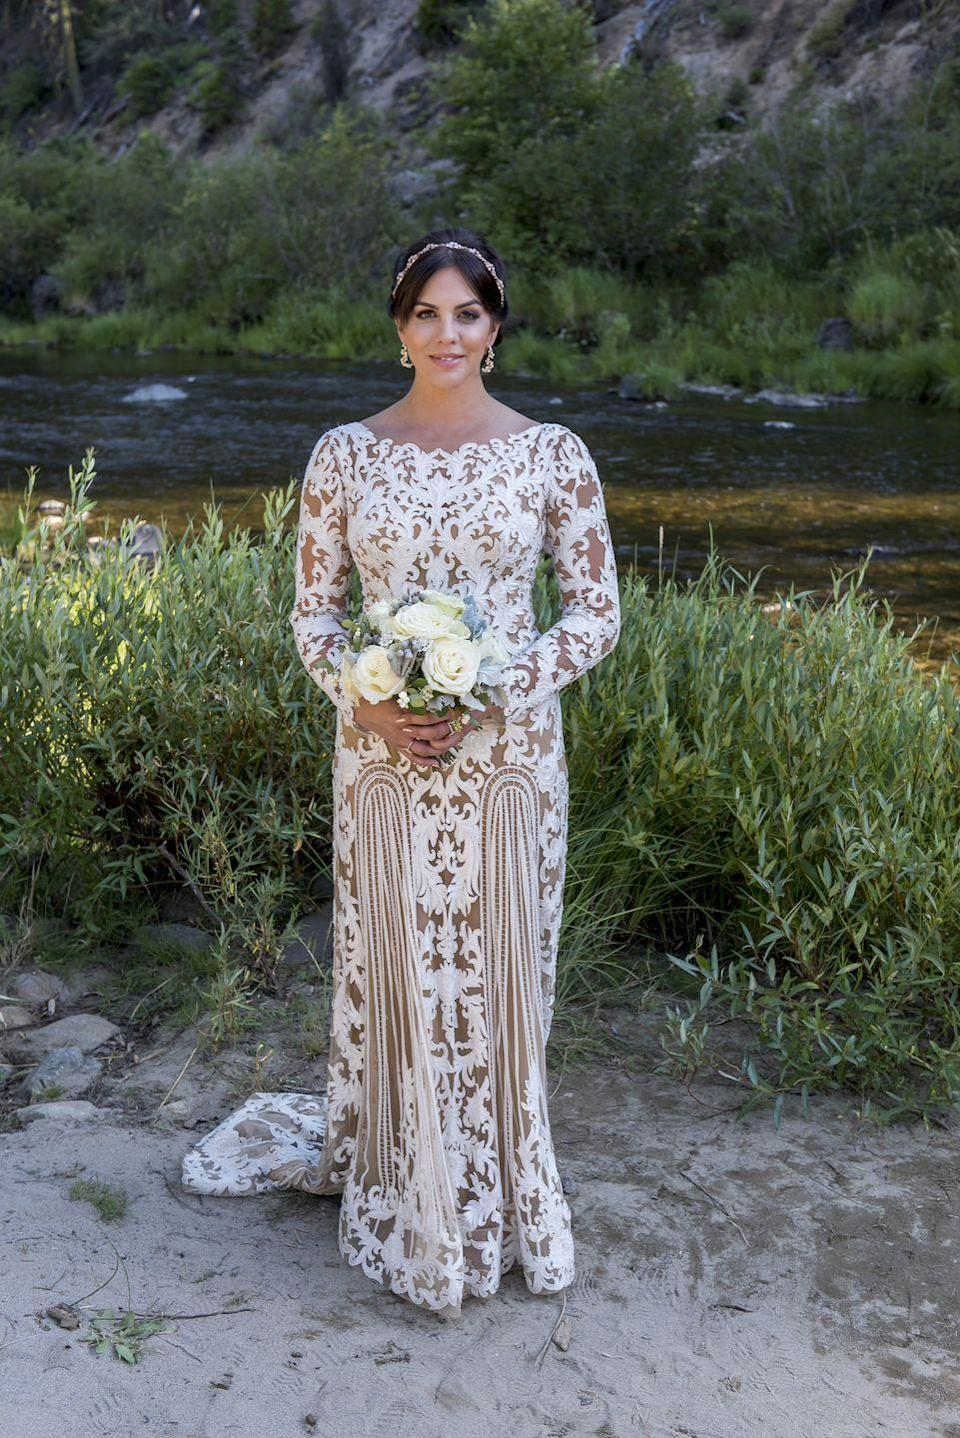 <p>Reality star Katie Maloney's relationship with Tom Schwartz had its ups and downs on <em>Vanderpump Rules, </em>but fans couldn't wait to watch them get married in season 5. Katie wore a unique boatneck, long-sleeve gown with sheer paneling and a beaded headband in lieu of a veil. </p>